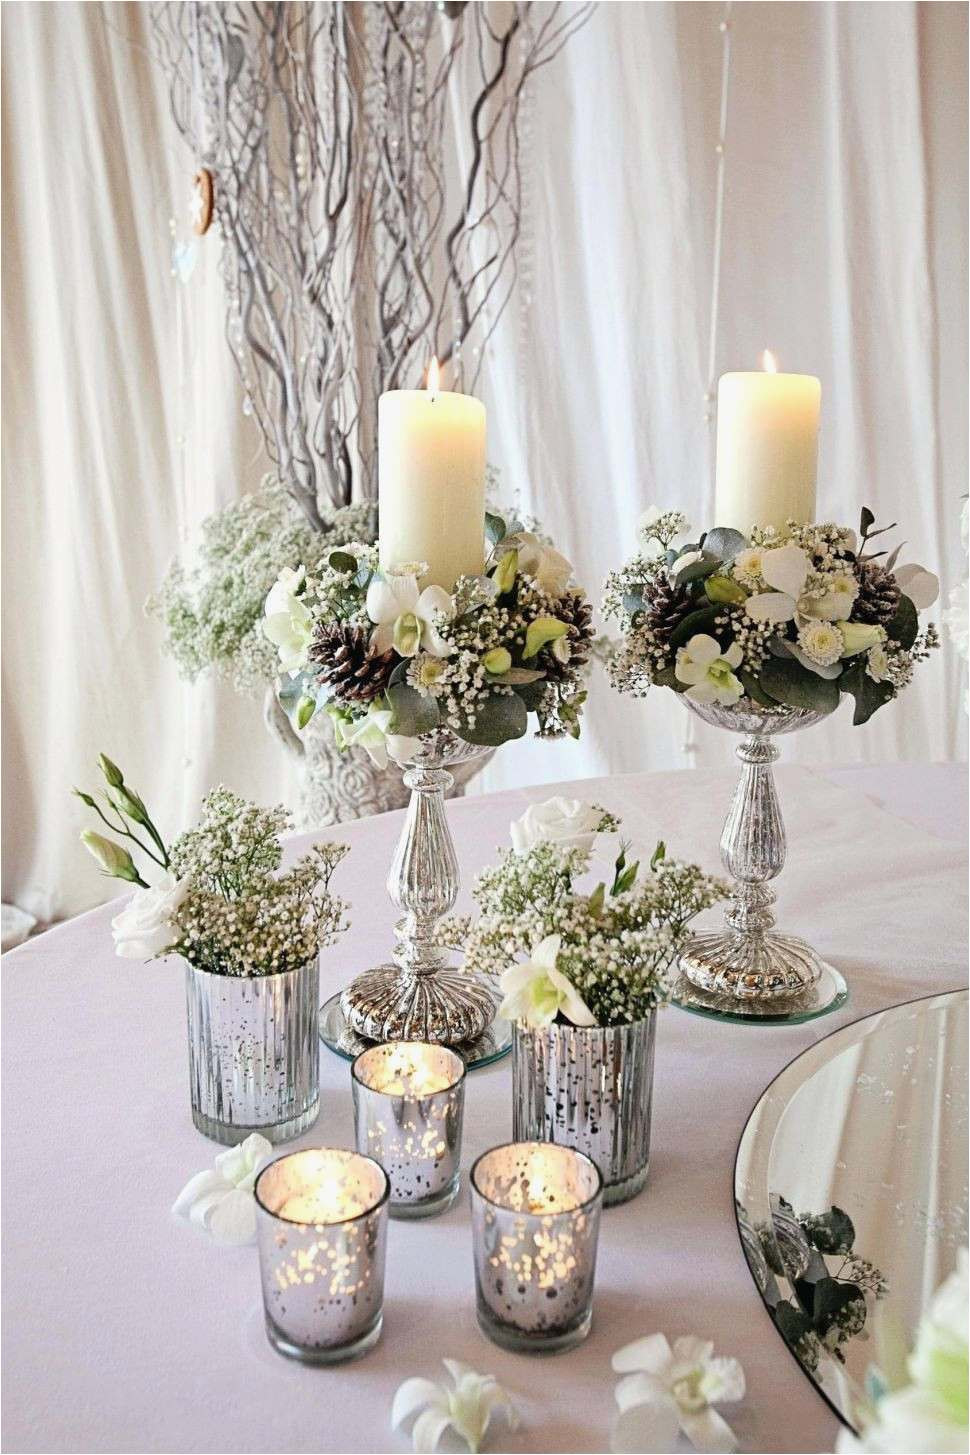 eiffel tower vase arrangement ideas of 28 cool wedding reception decoration ideas trending best wedding intended for cool living room vases wholesale new h vases big tall i 0d for cheap design wedding